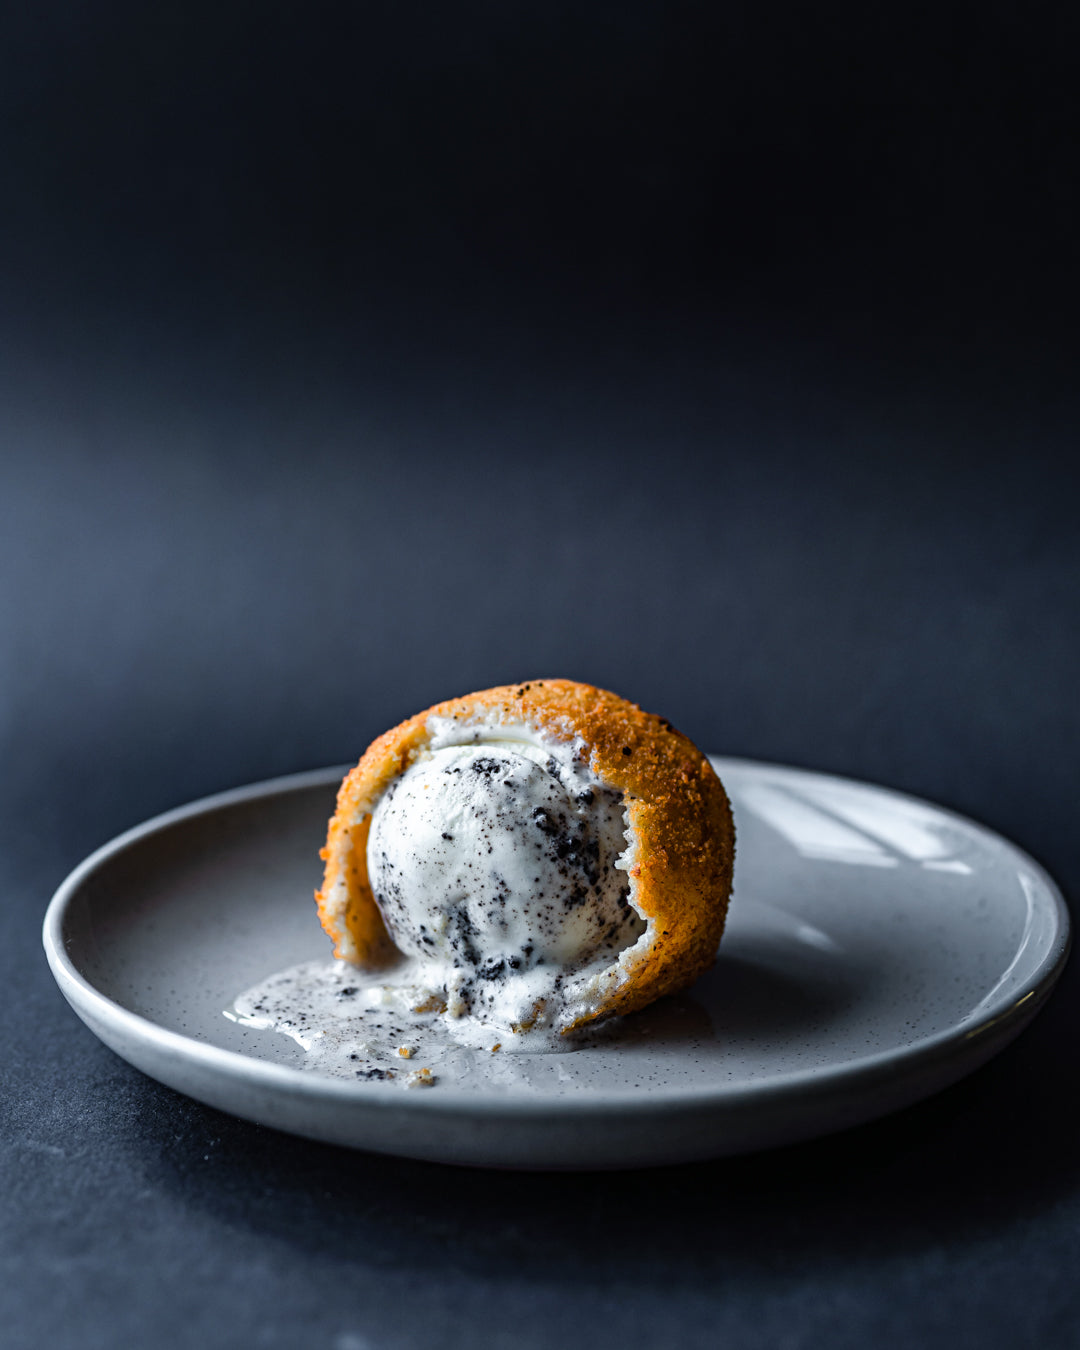 Cookies & cream fried ice cream